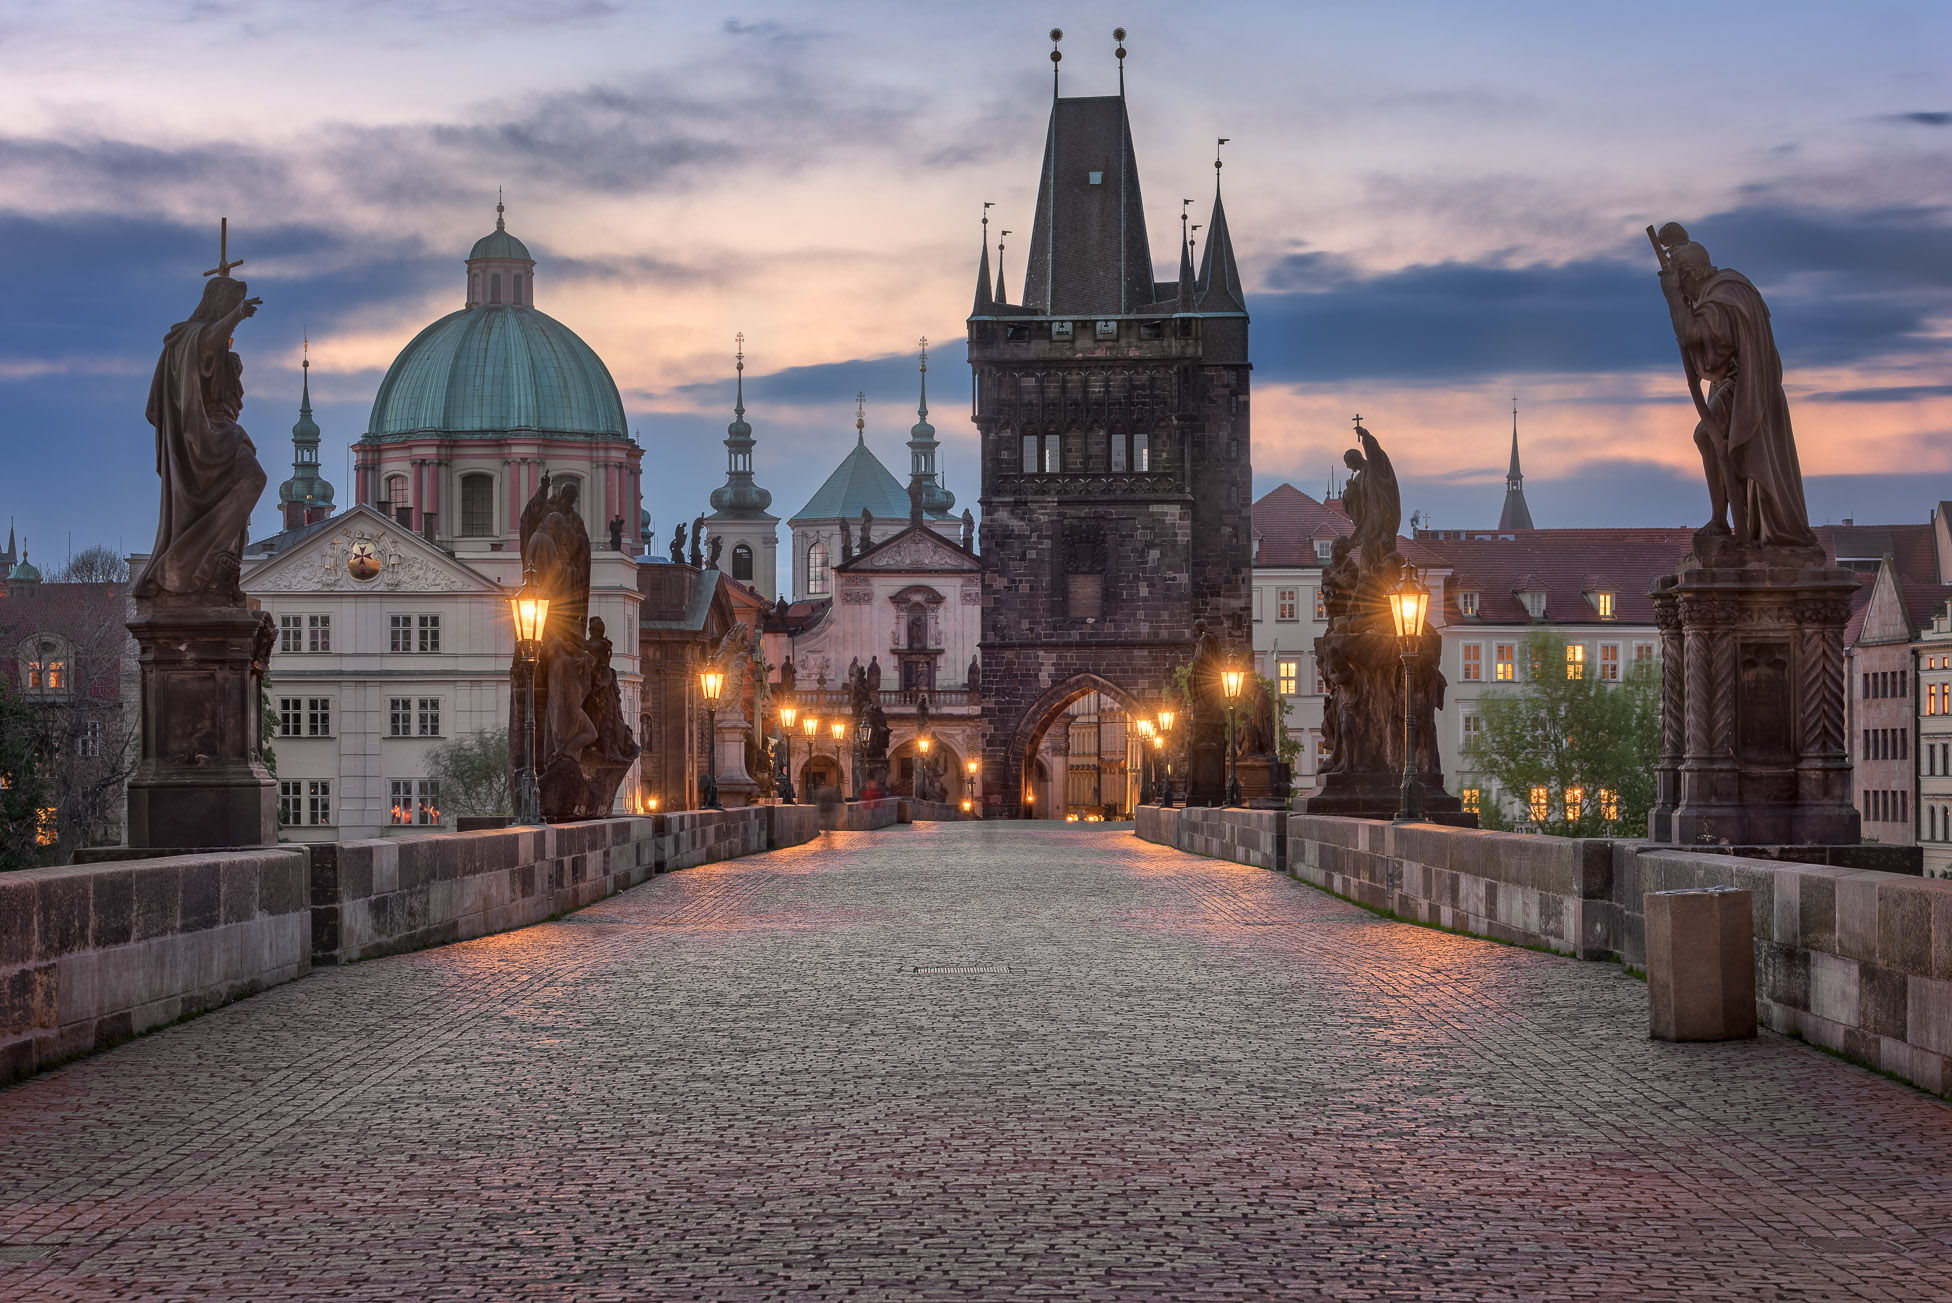 Charles Bridge in the Morning, Prague, Czech Republic